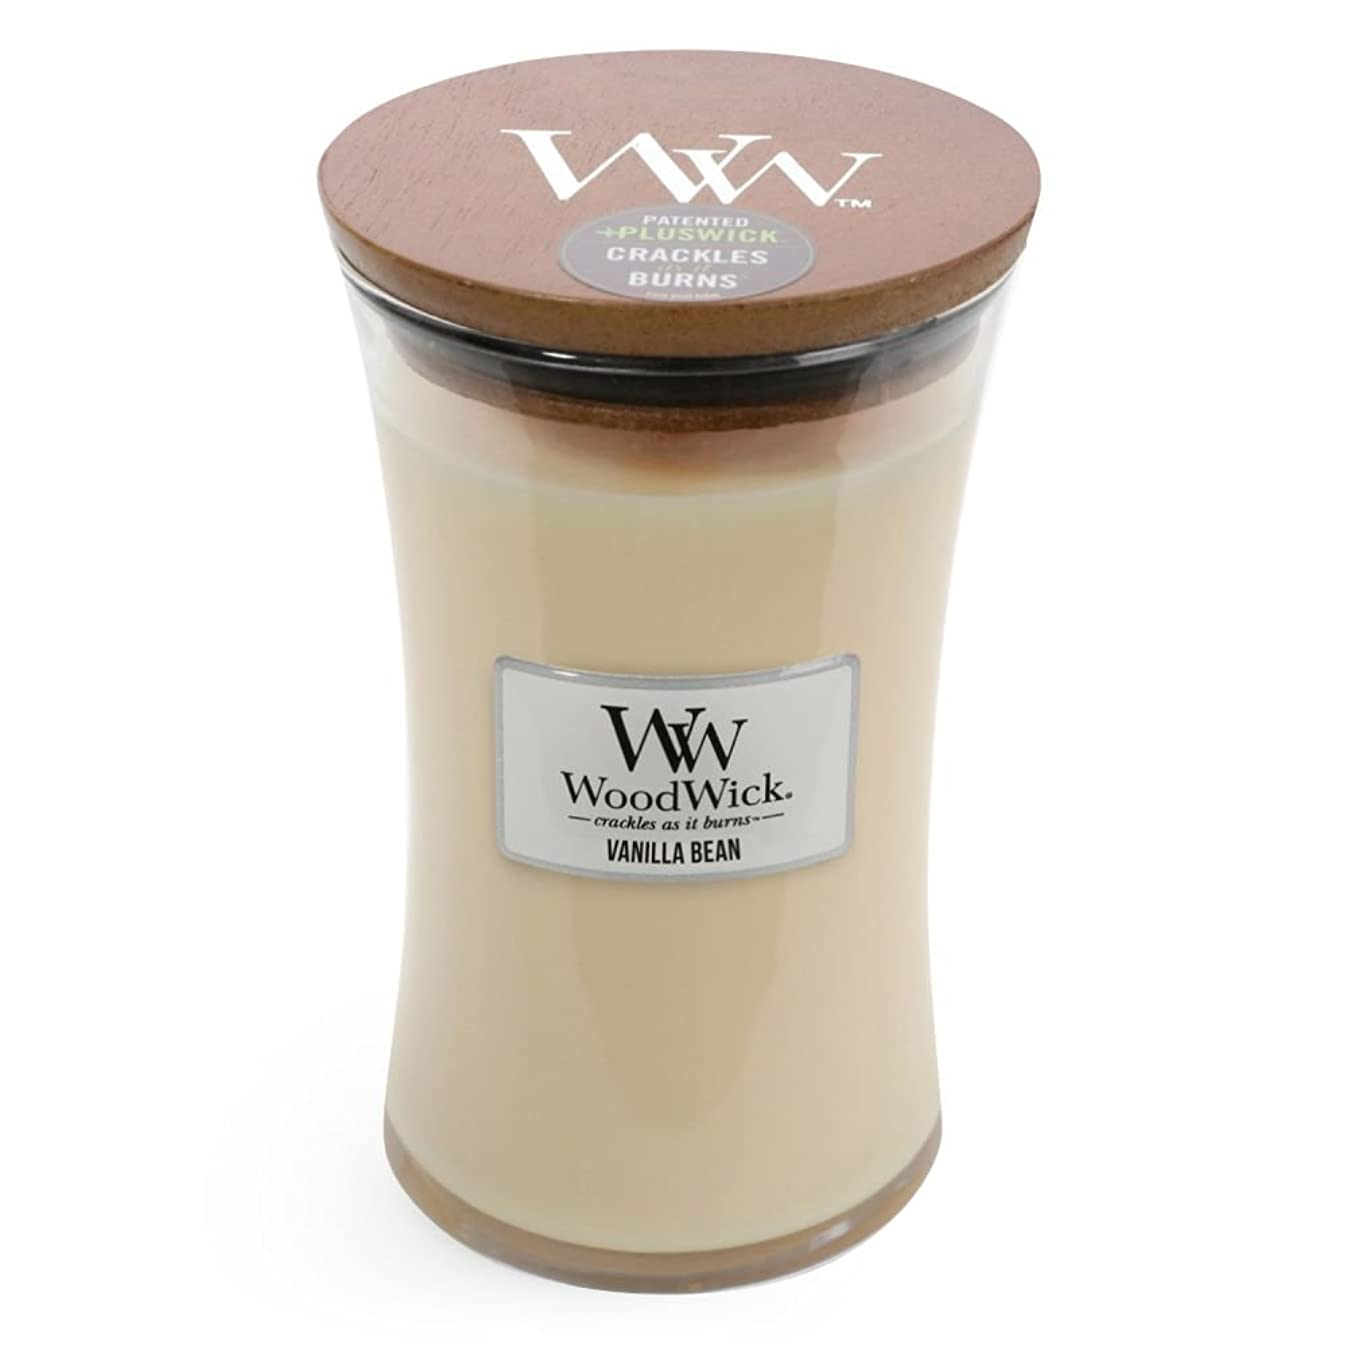 Vanilla Bean WoodWick Glass Jar Scented Candle, Large 22 oz.